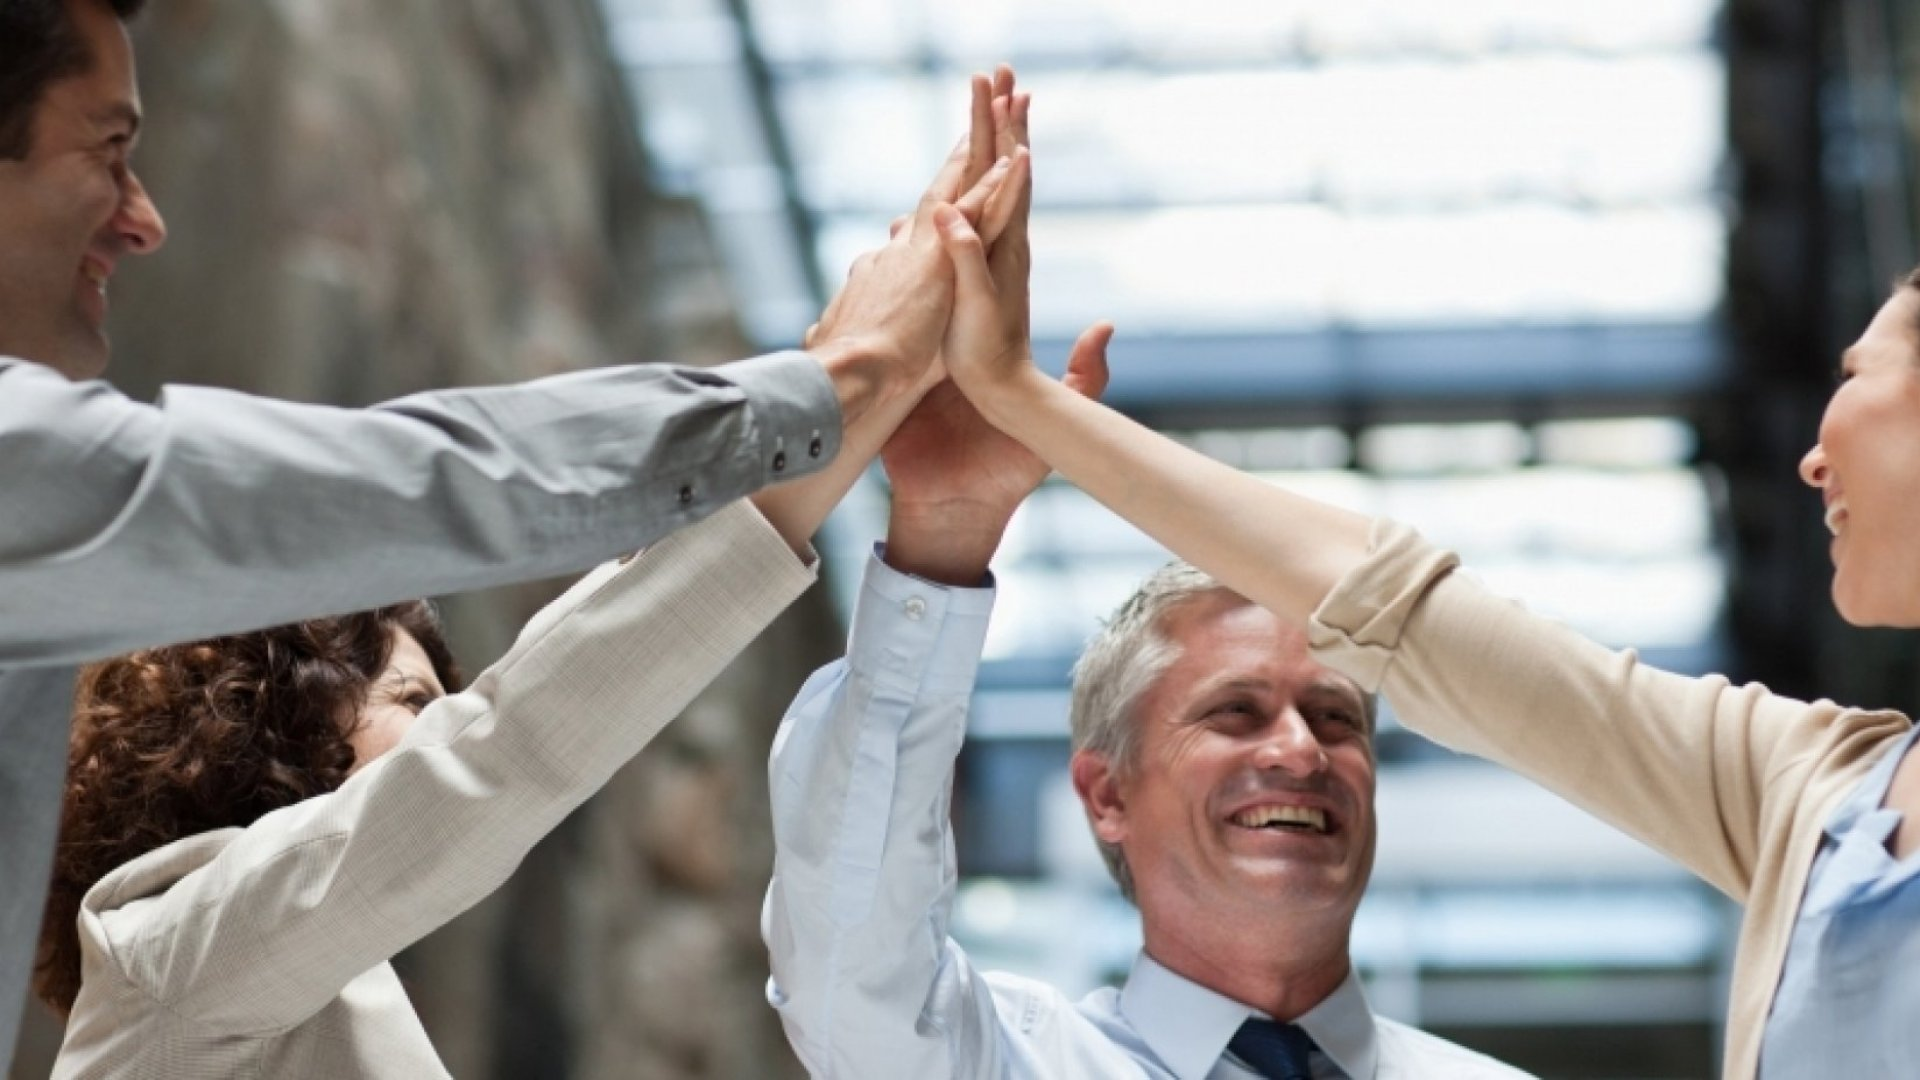 5 Ways to Make Your Working Relationships Better